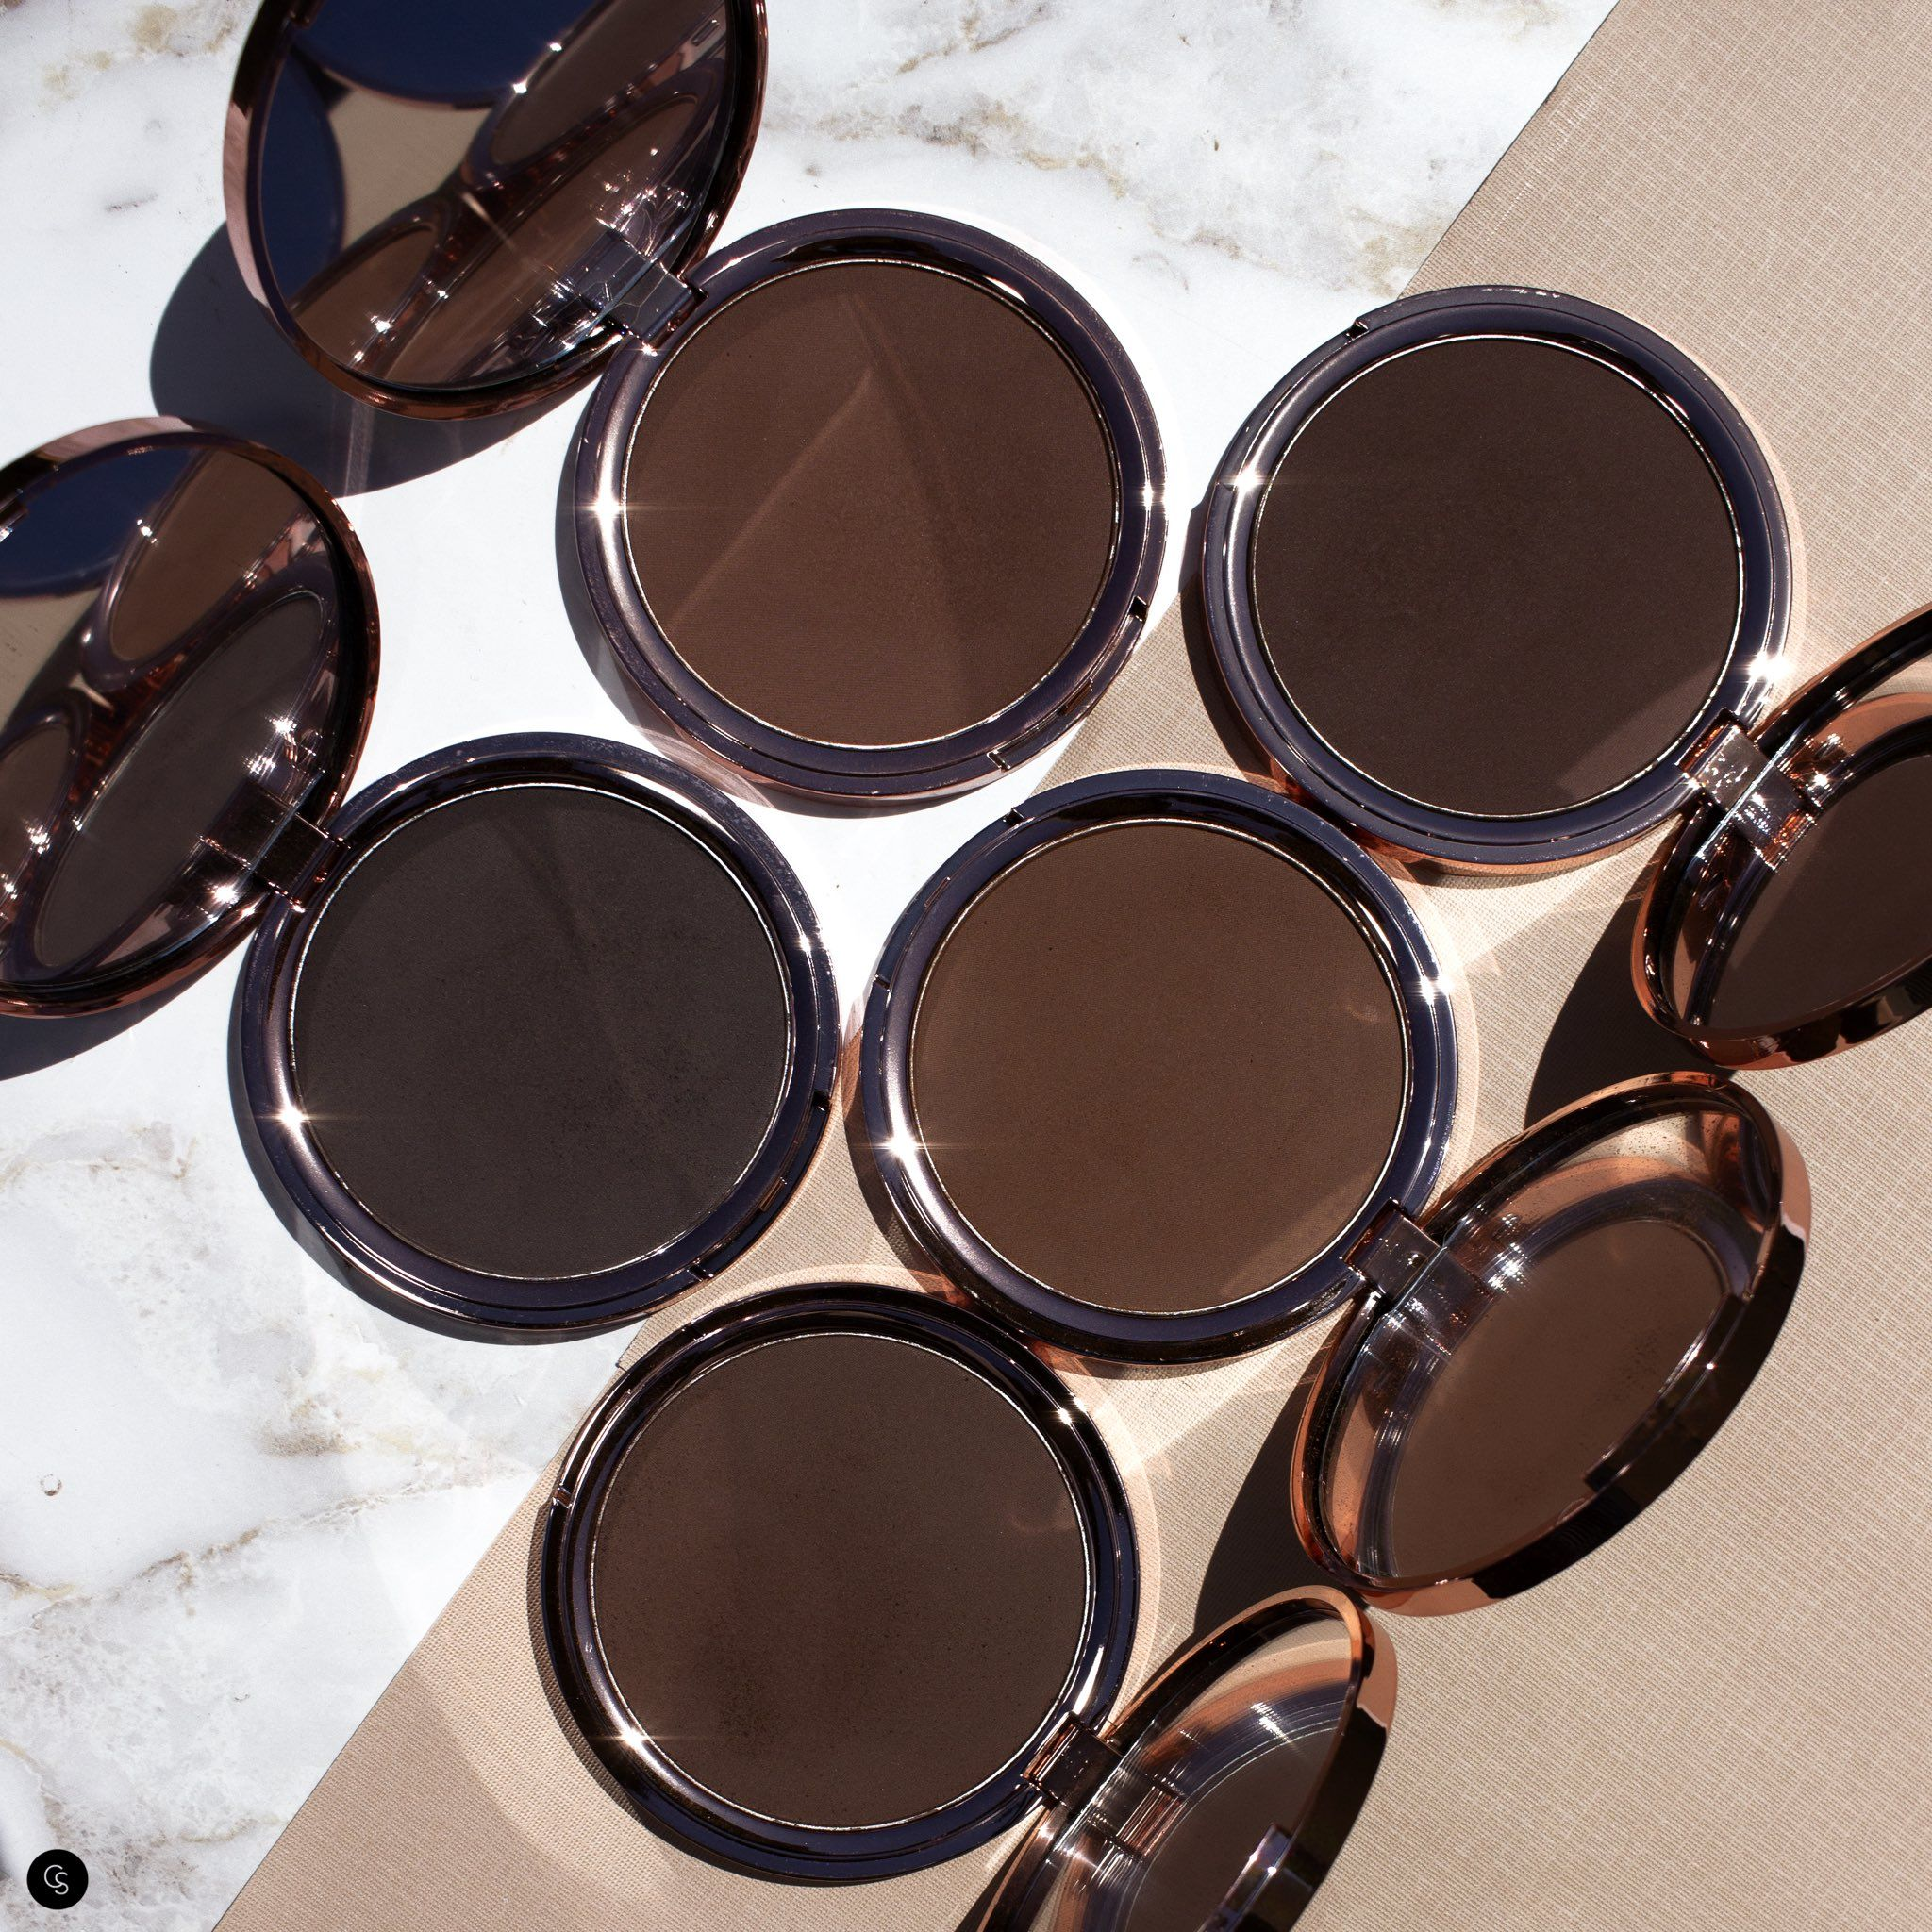 Pin by Claire Bowen on Makeup. in 2020 Matte bronzer